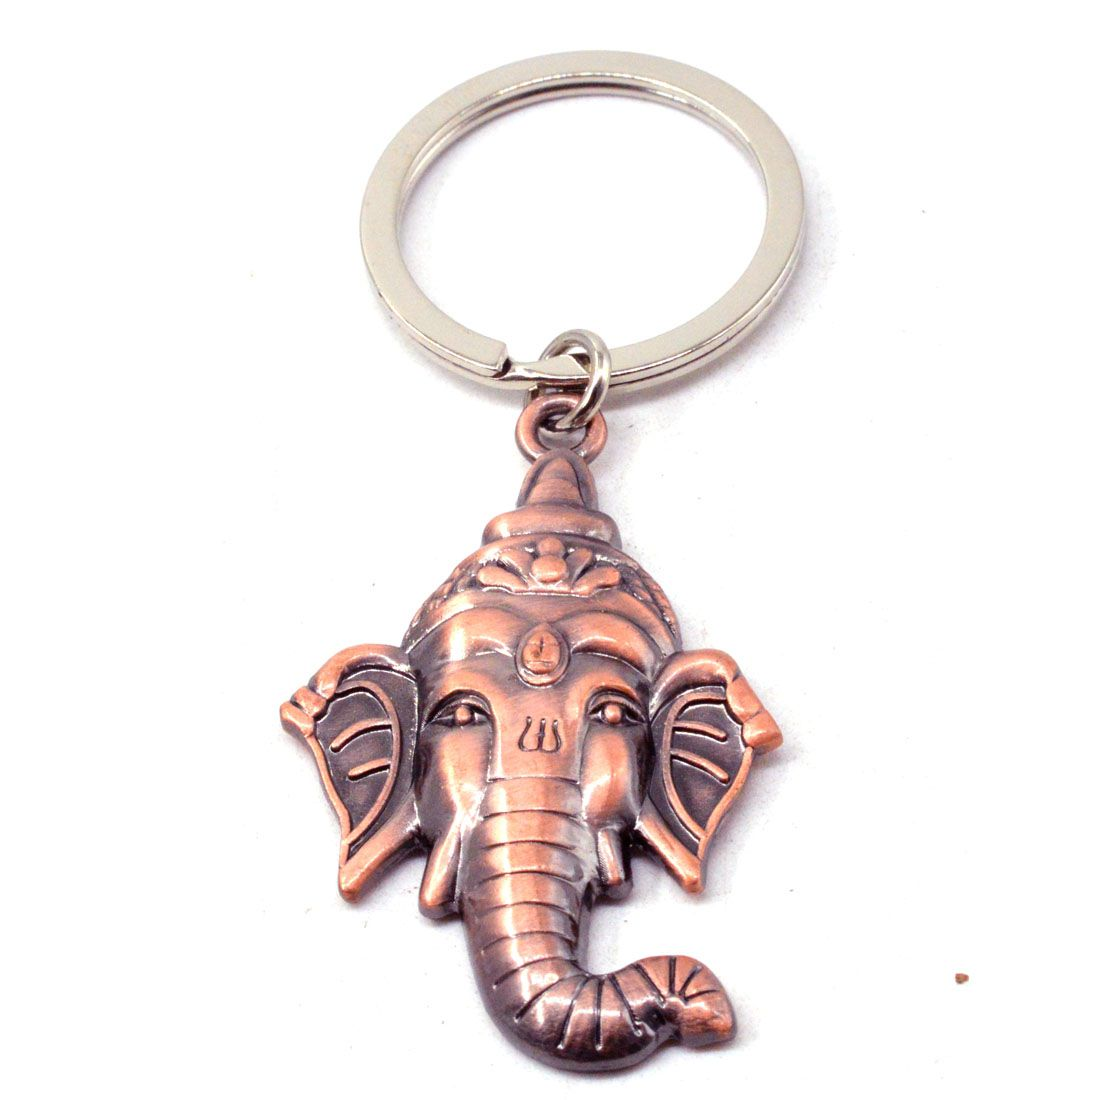 Faynci Shree Lord Ganeshaya Metal Key Chain for Good Luck